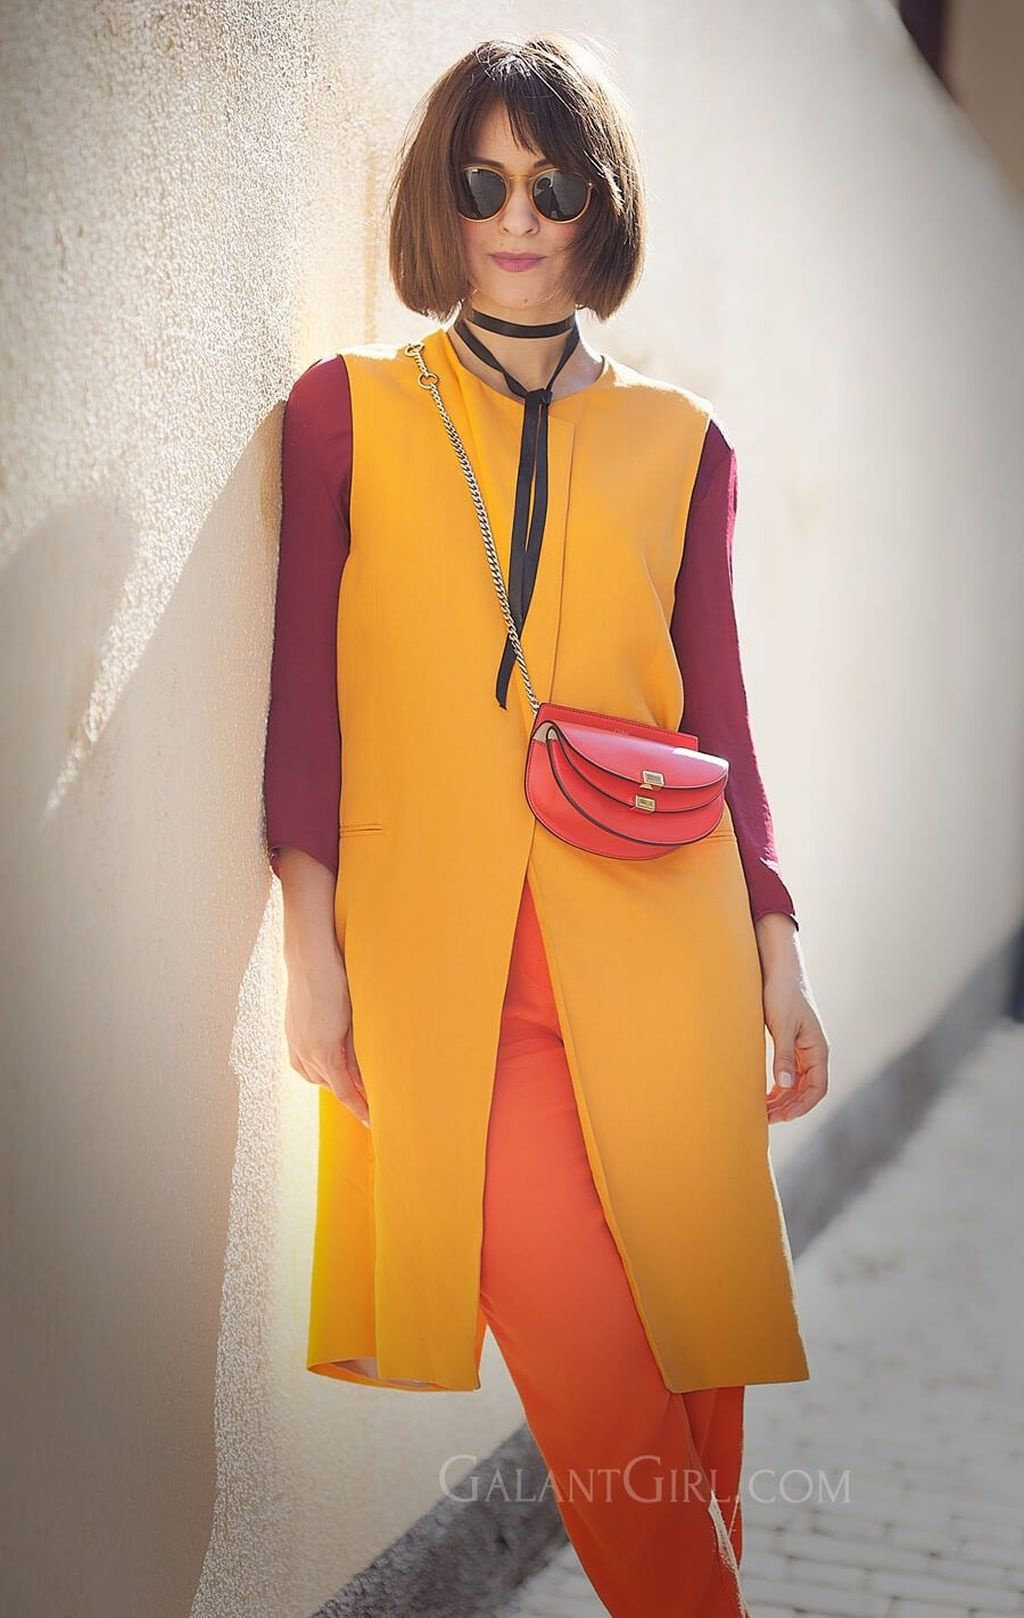 Fascinating Outfit Ideas For Spring35